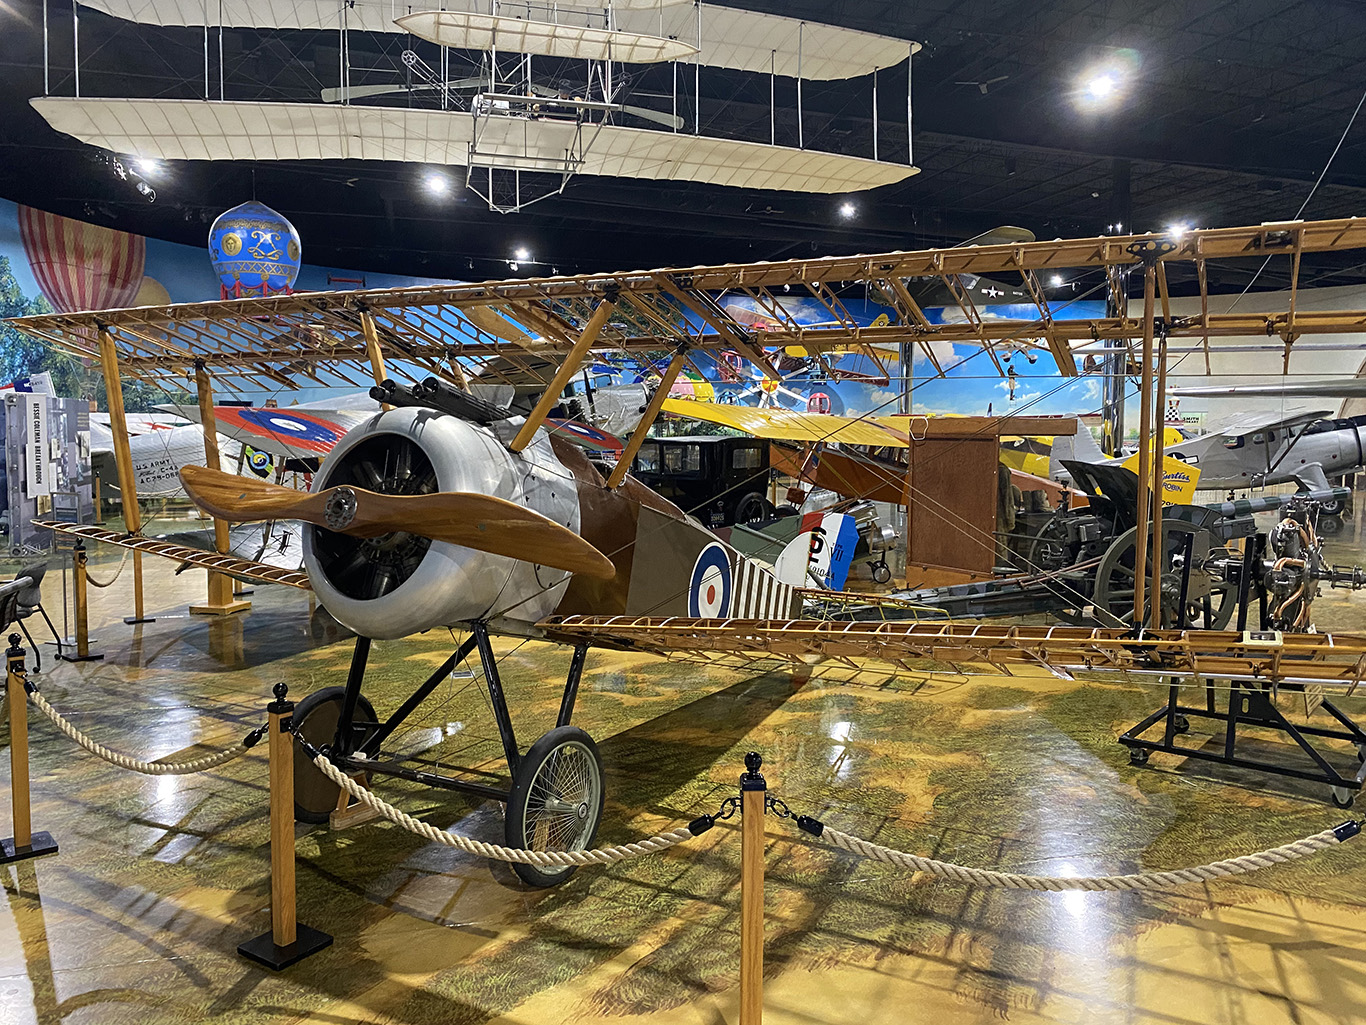 The Sopwith Camel image